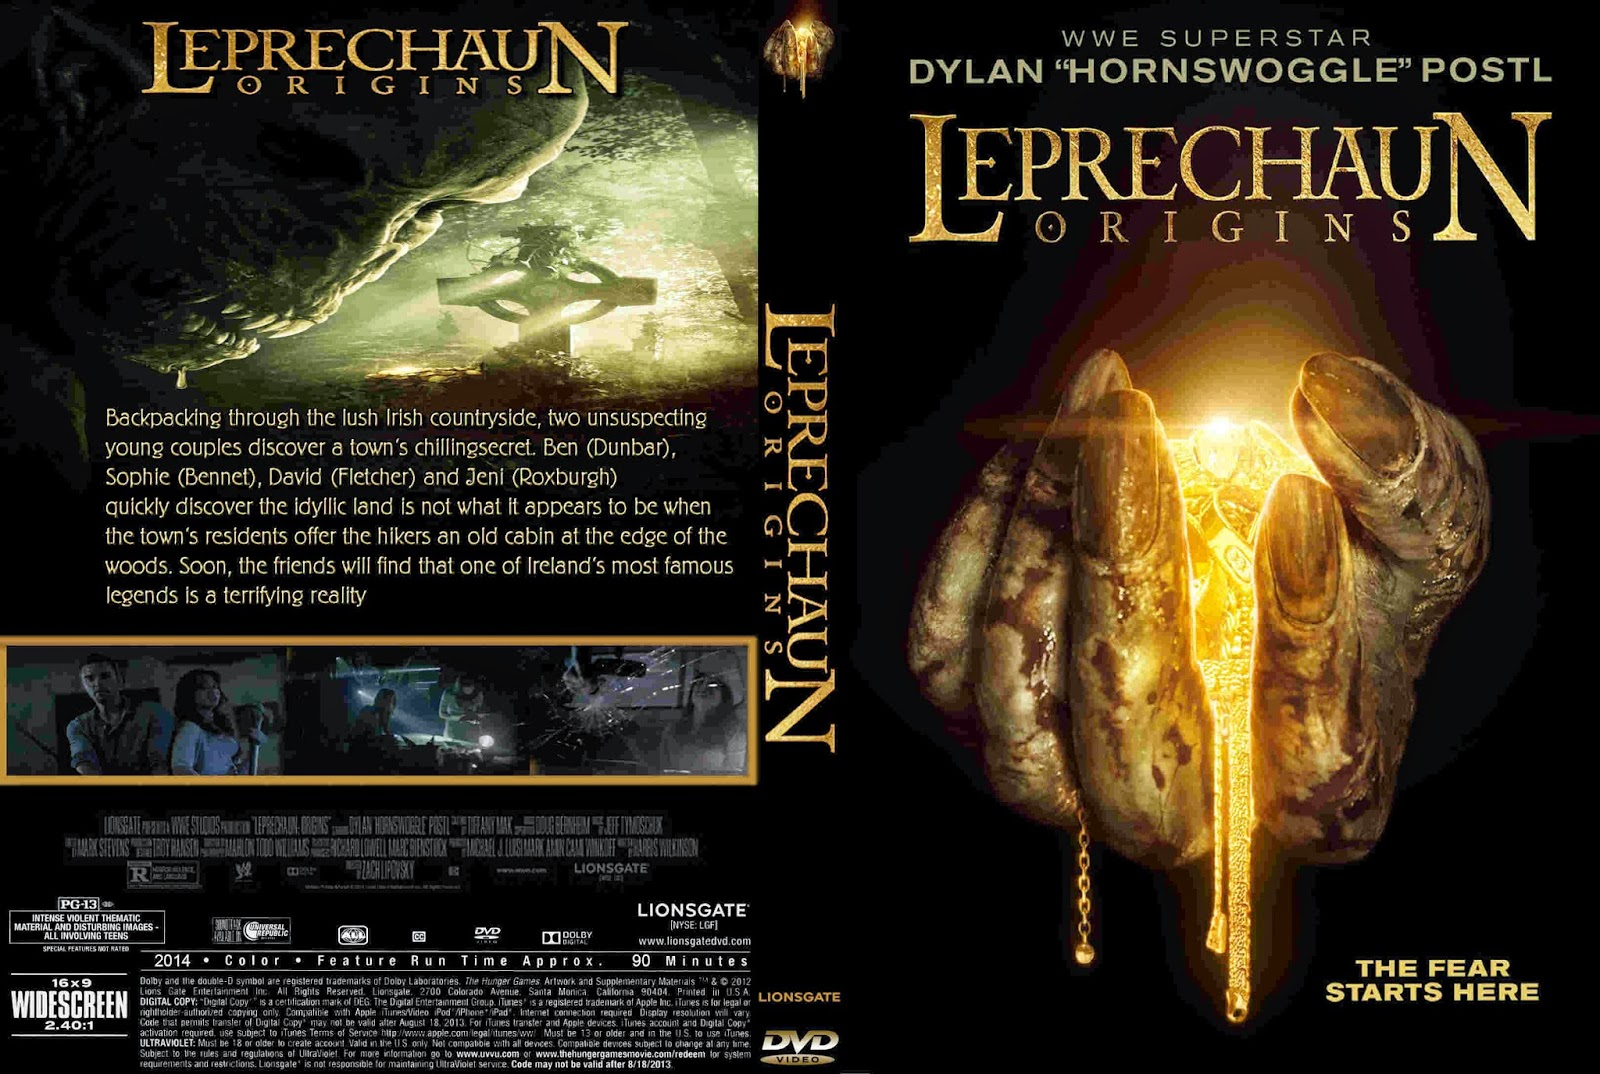 Download O Duende As Origens BDRip XviD Dual Áudio Leprechaun 2BOrigins 2B 2014  2B  2BCover 2BDVD 2BMovie